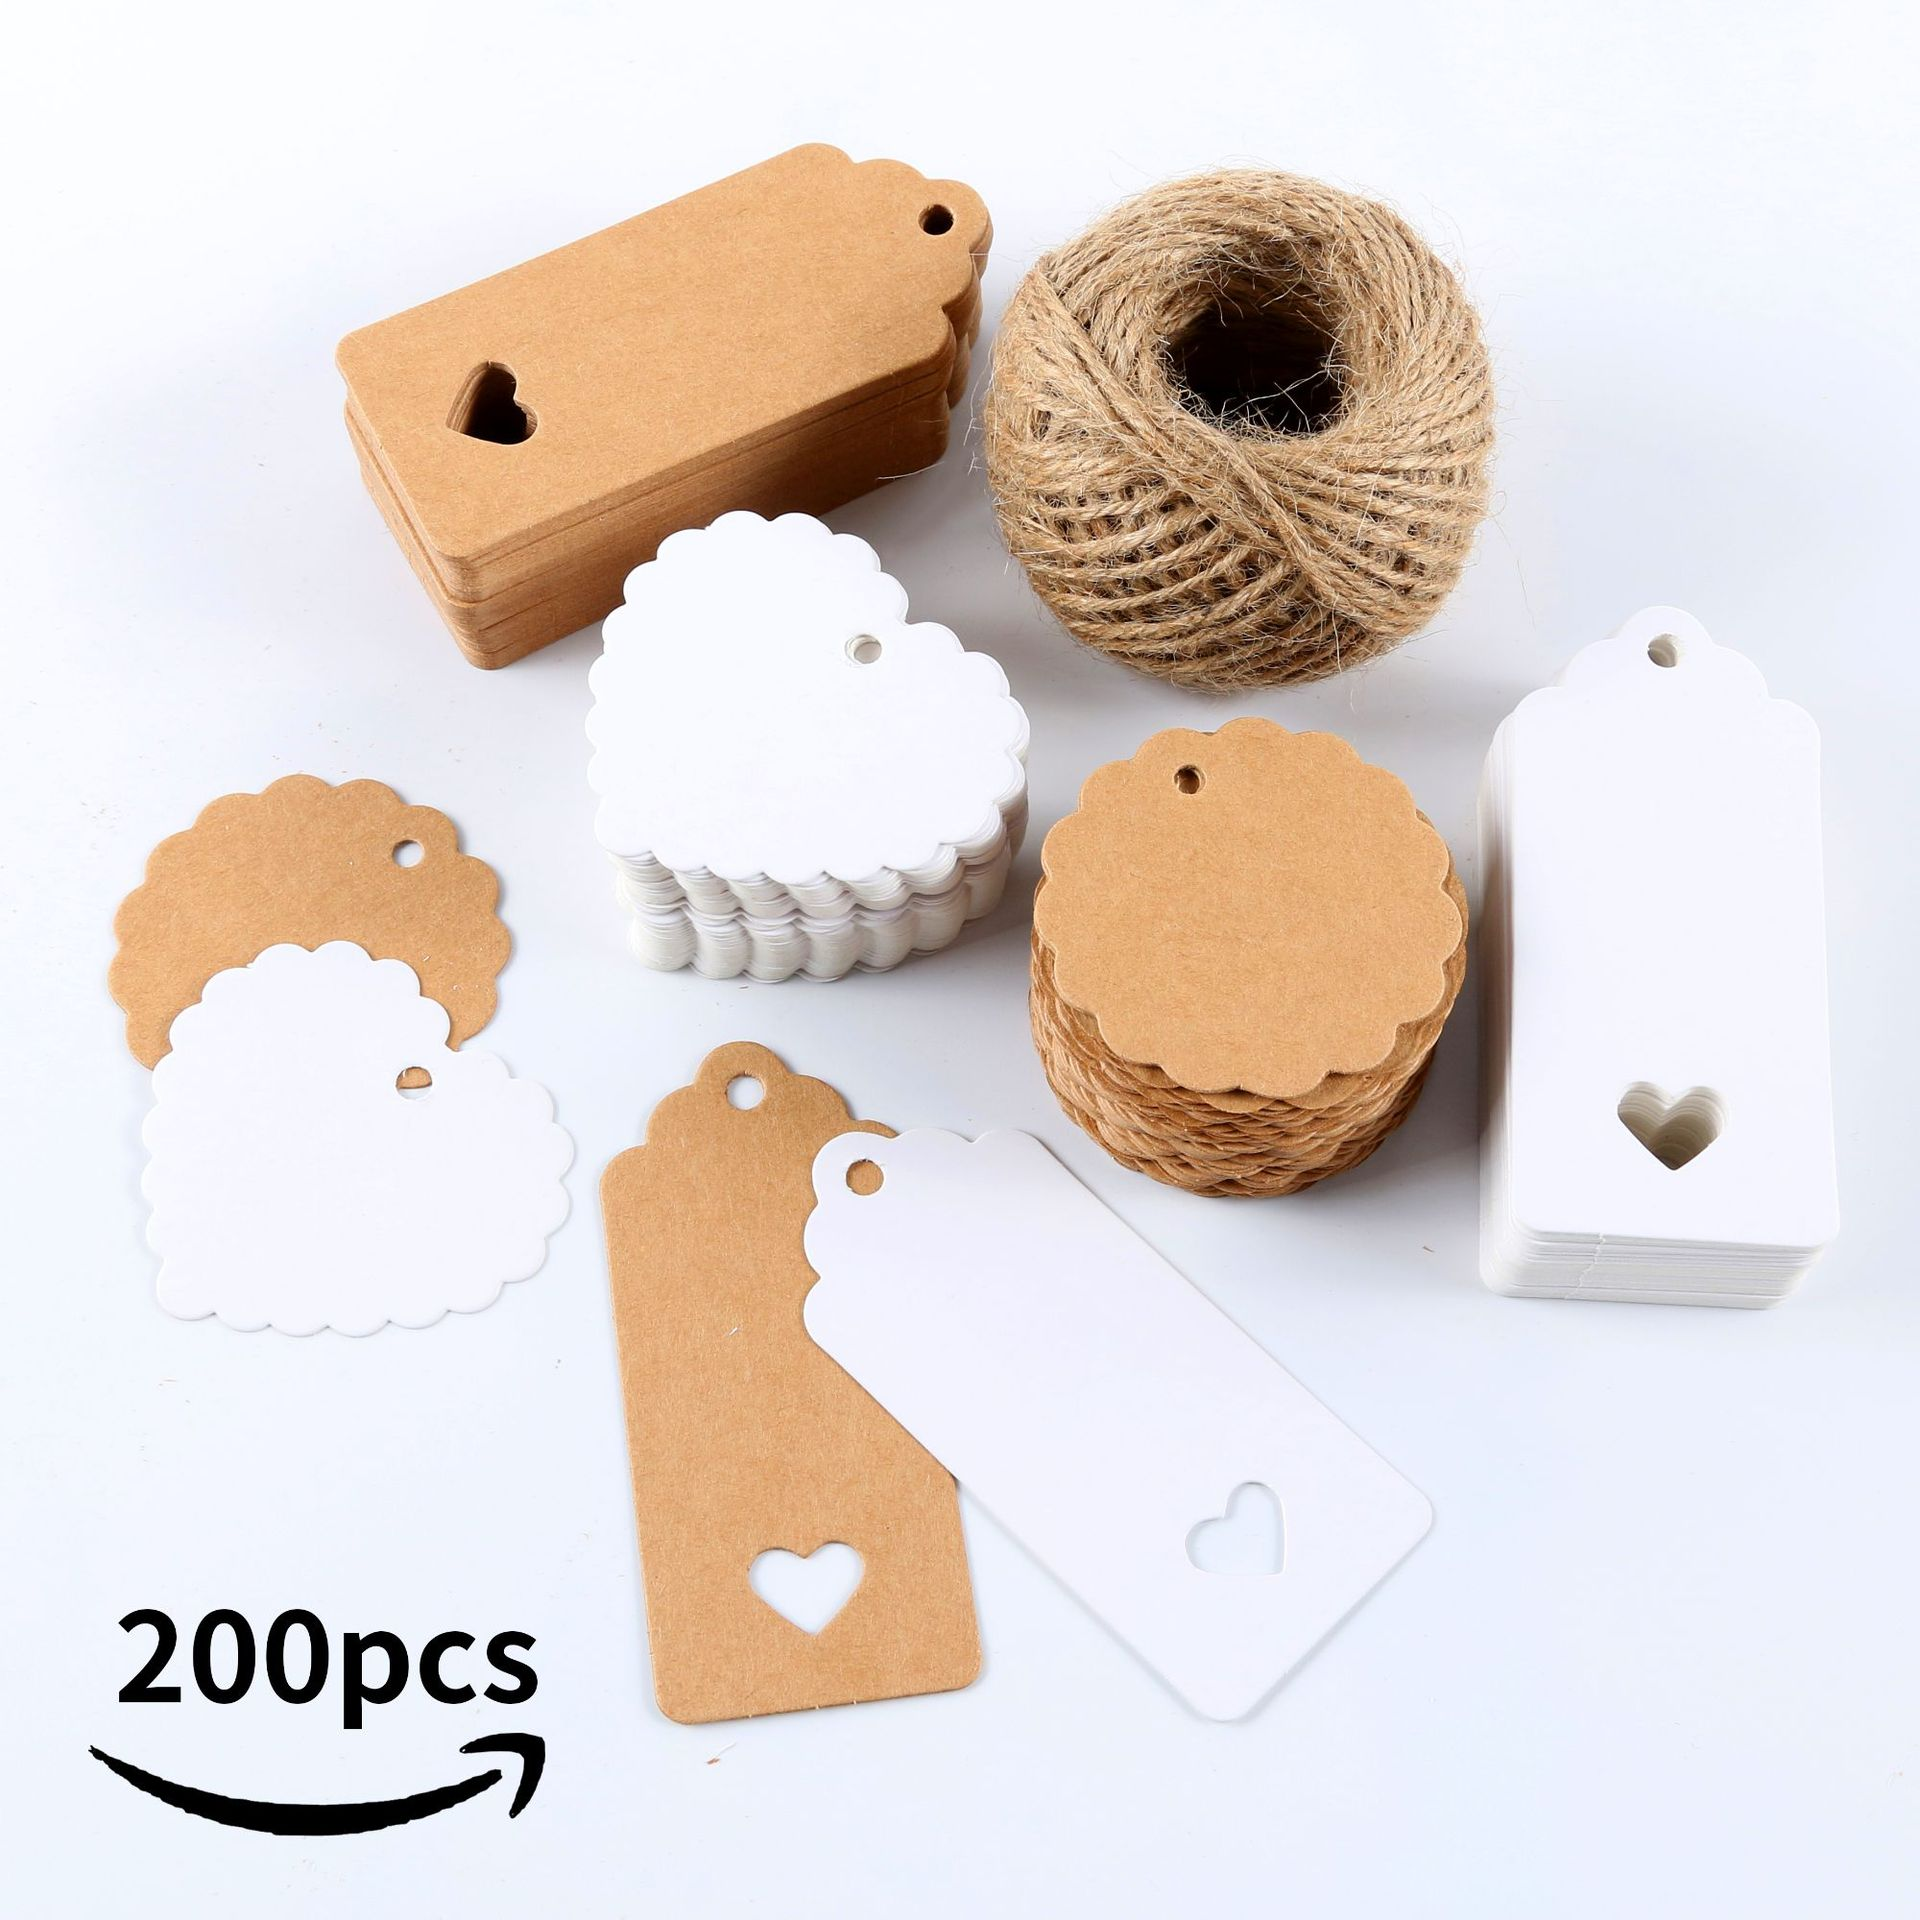 200 Pcs Natural Kraft Paper Handmade Blank label With Jute Twine Gift Tags For Price Garment Tags DIY Crafts Stationery Tags